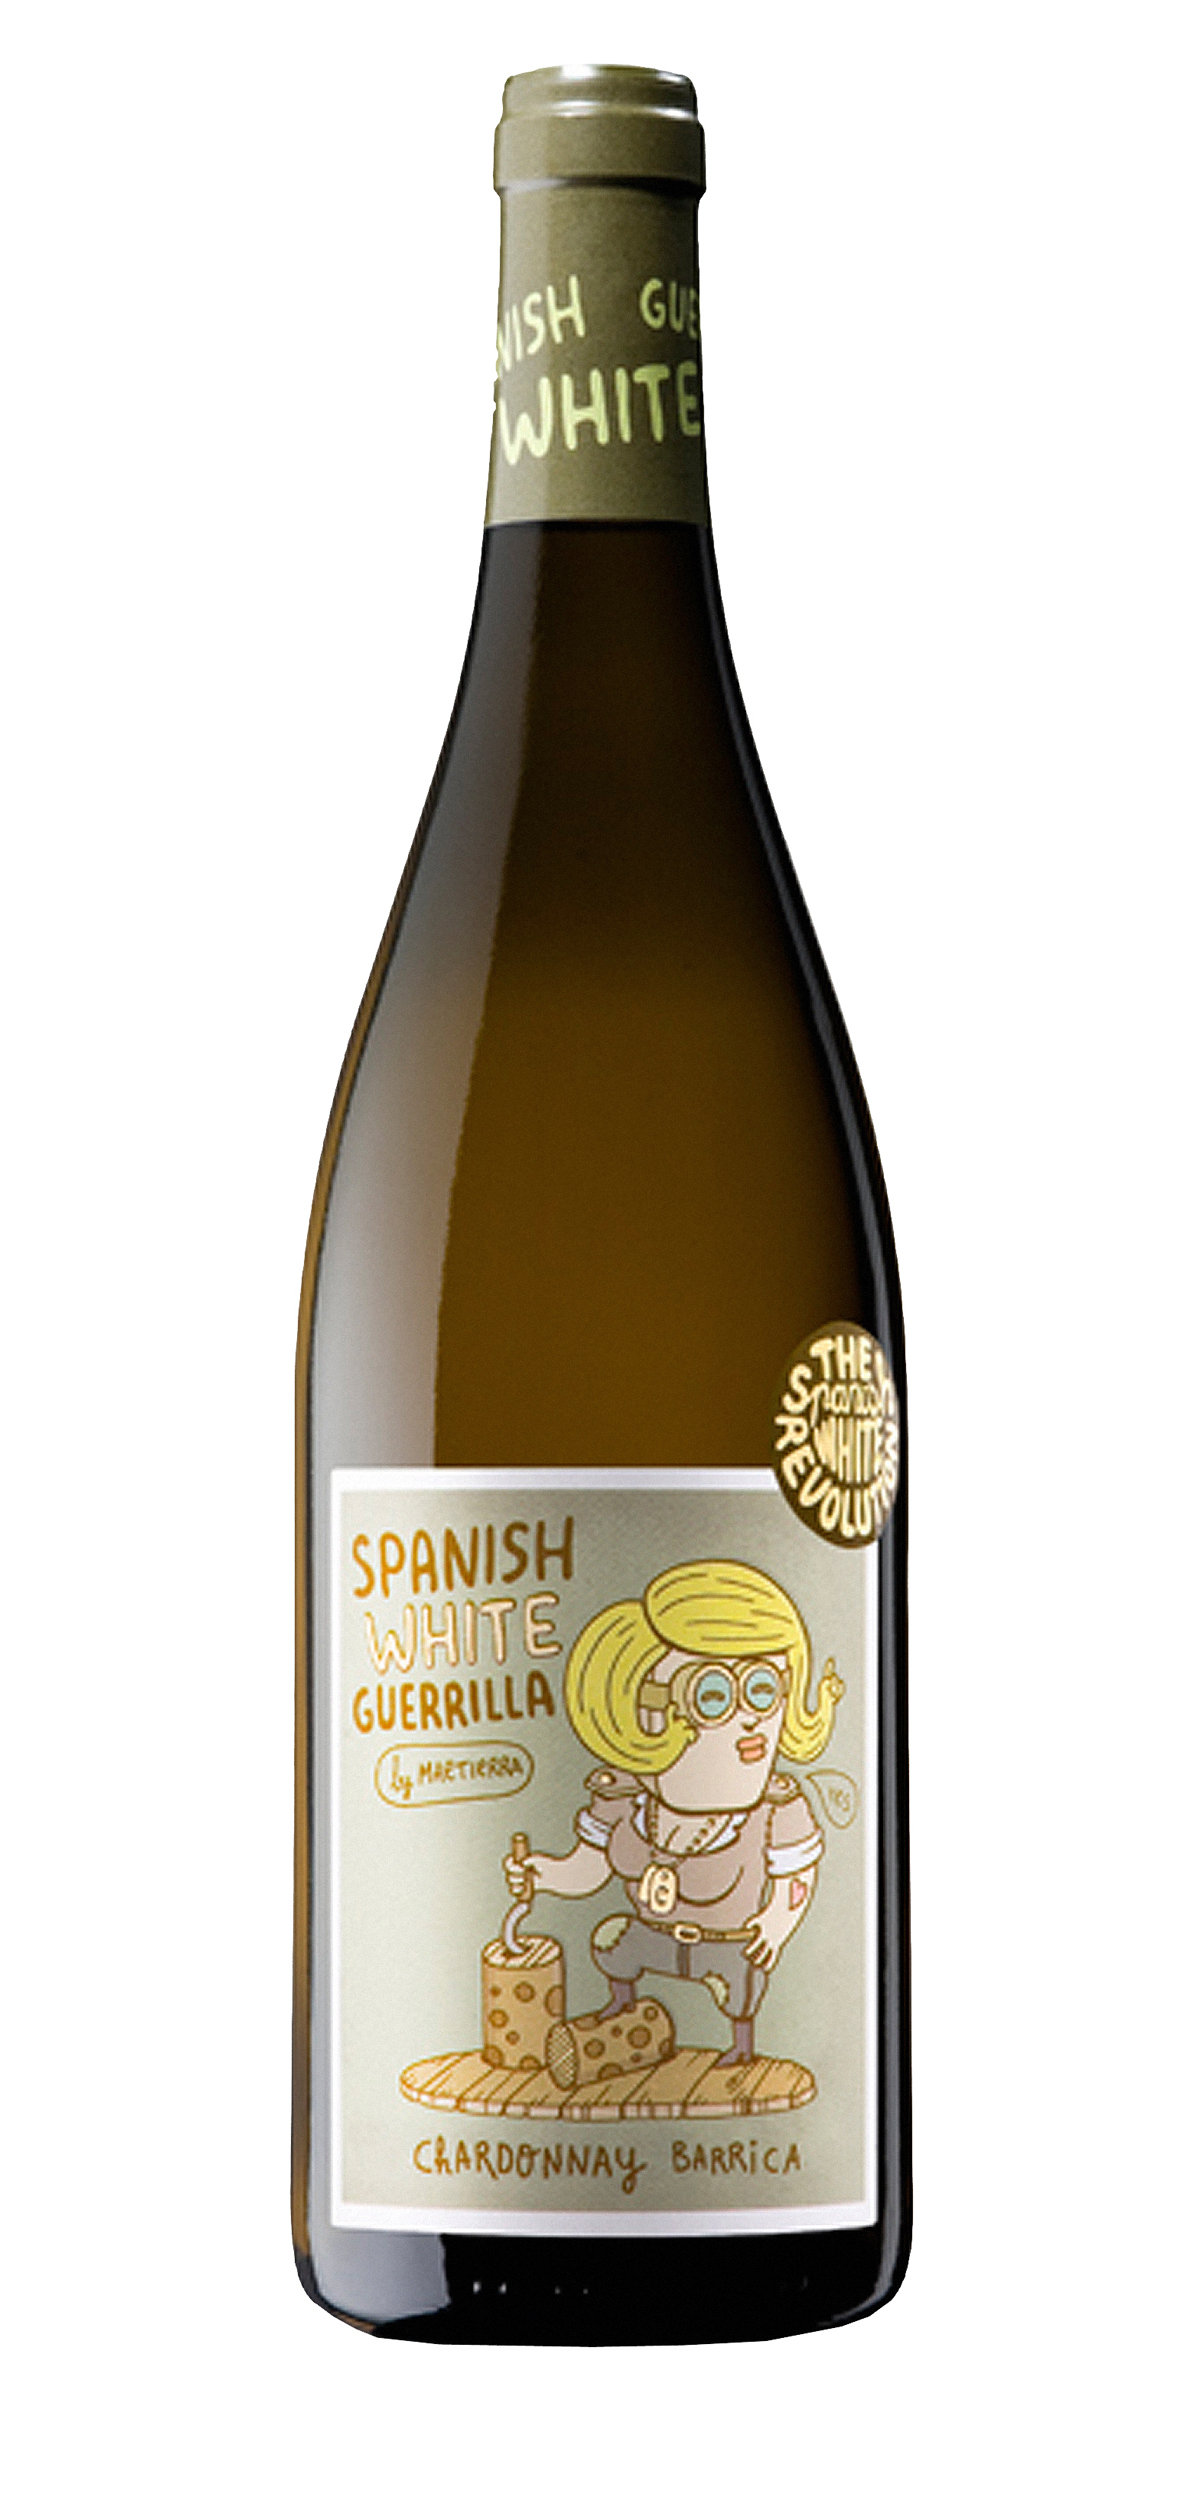 SWG Chardonnay Barrica wine bottle design